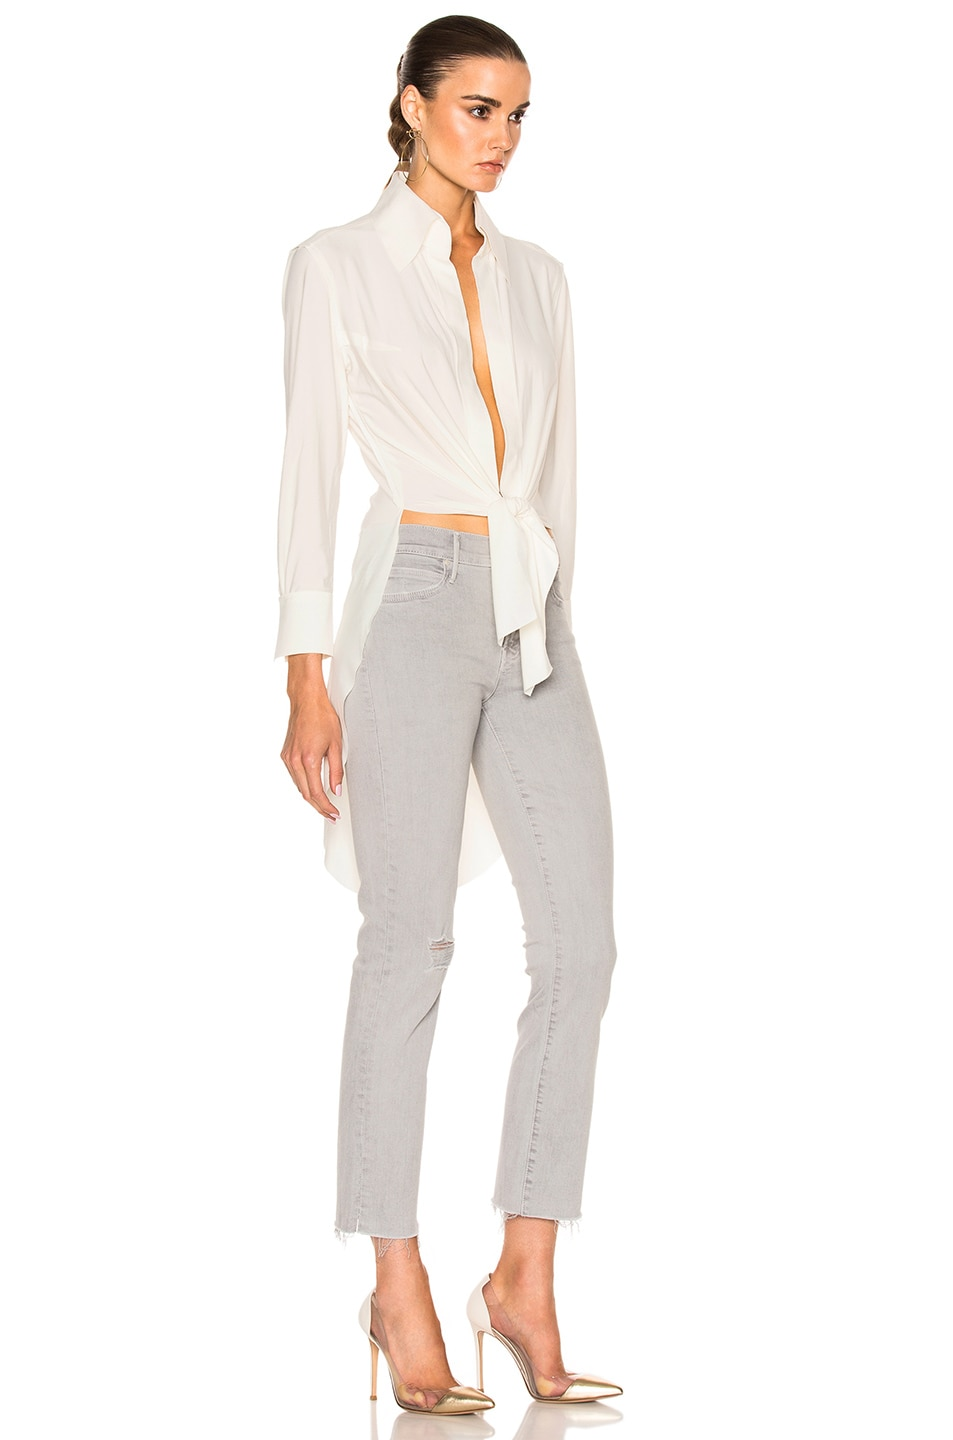 72c440a6577d Image 3 of Norma Kamali Tie Front Shirt in Ivory